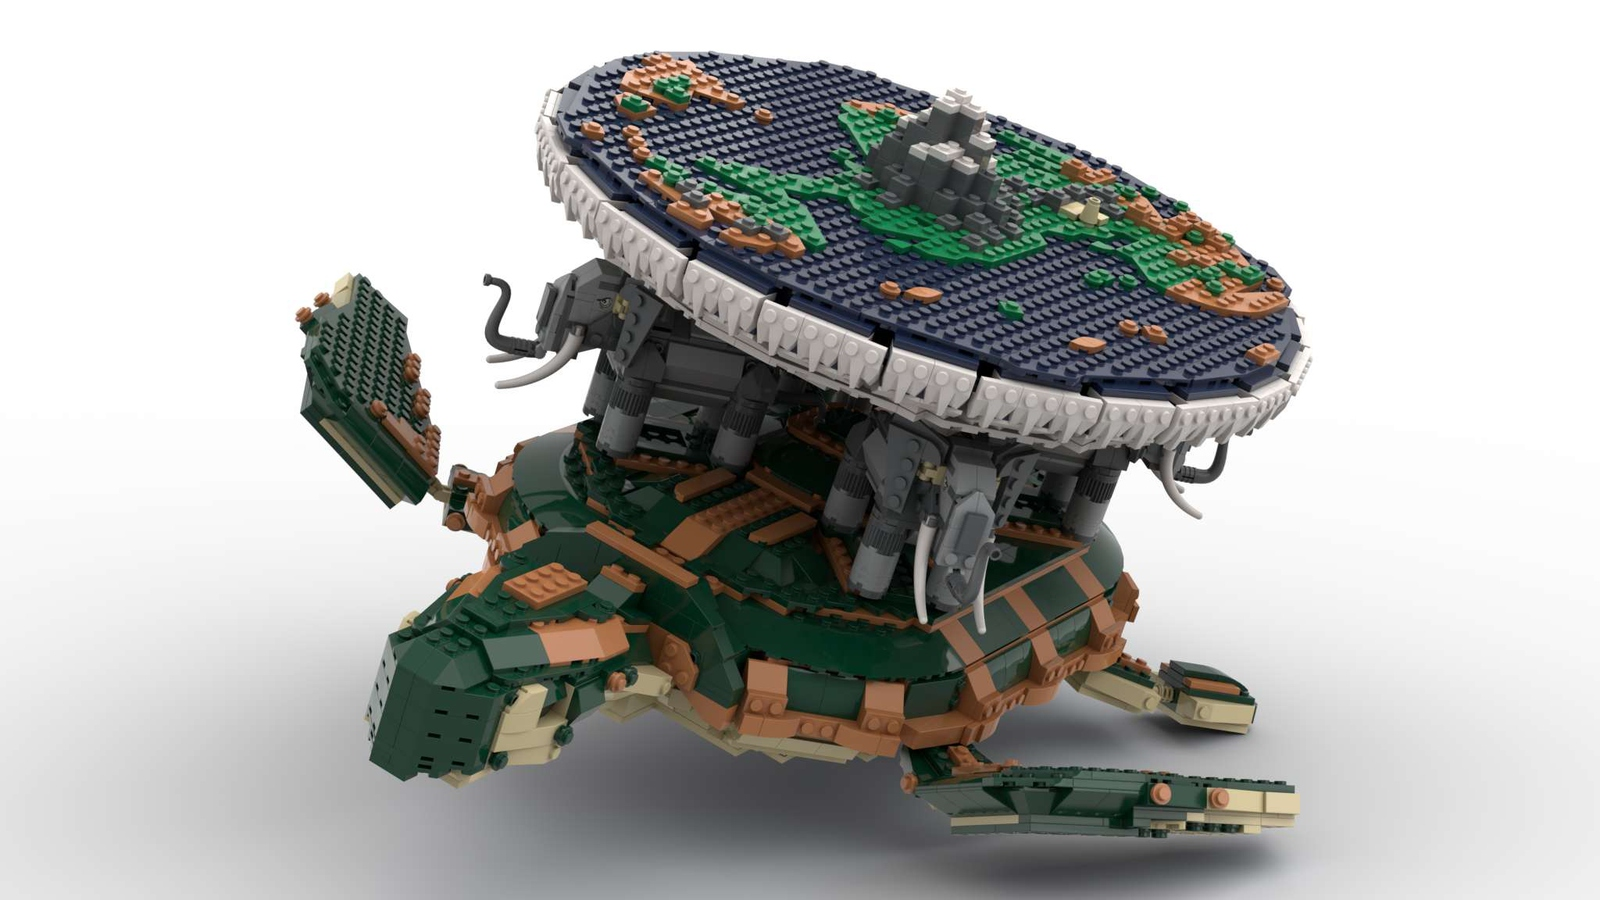 lego-ideas-terry-pratchetts-discworld-brickhammer zusammengebaut.com